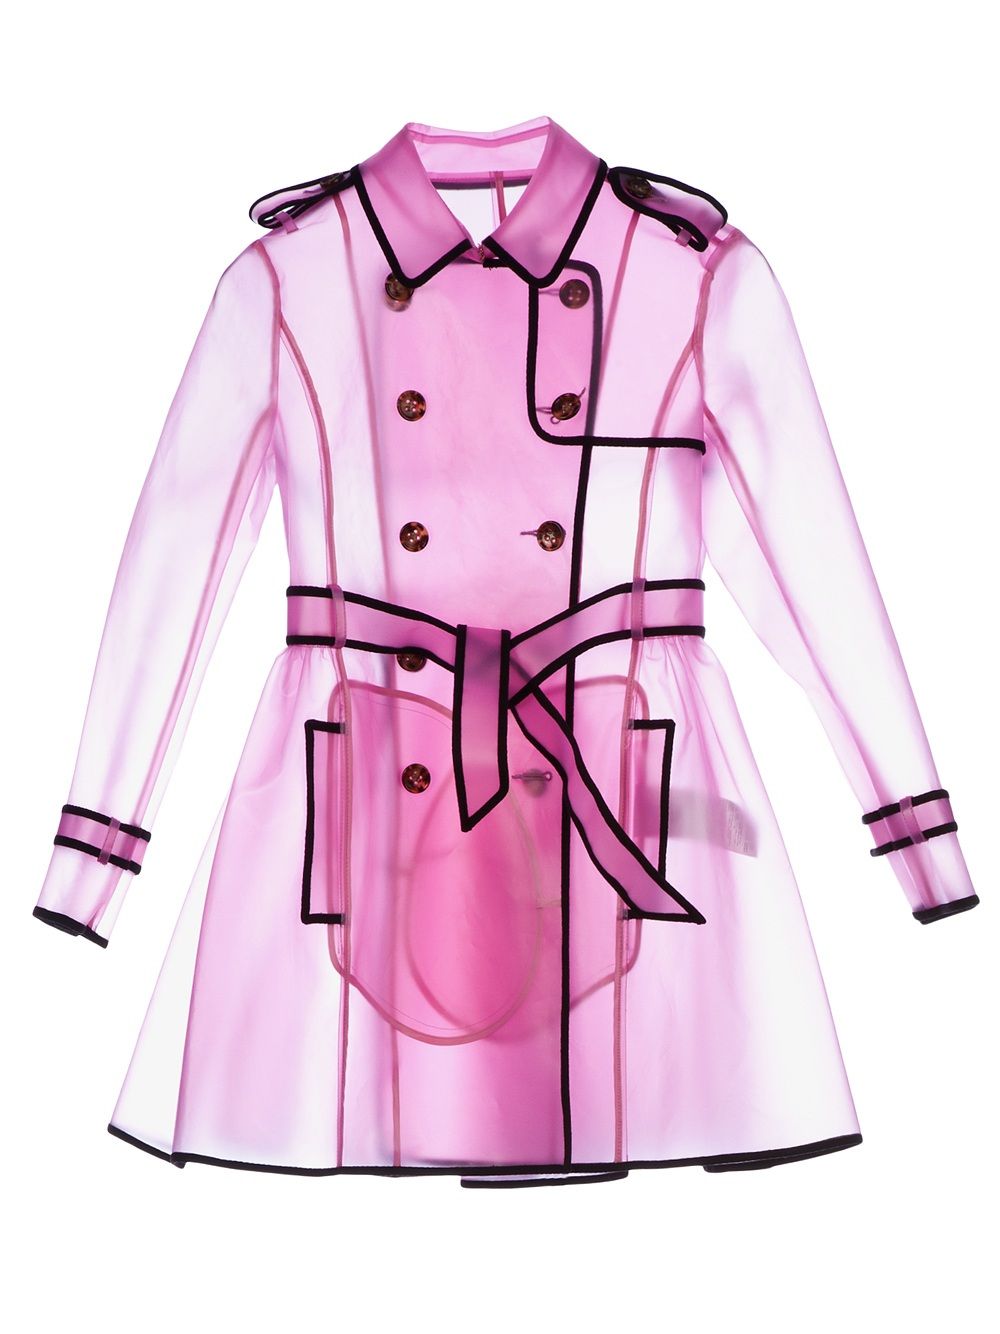 RED VALENTINO SHEER TRENCH COAT. Price:$755.22 FARFETCH.COM